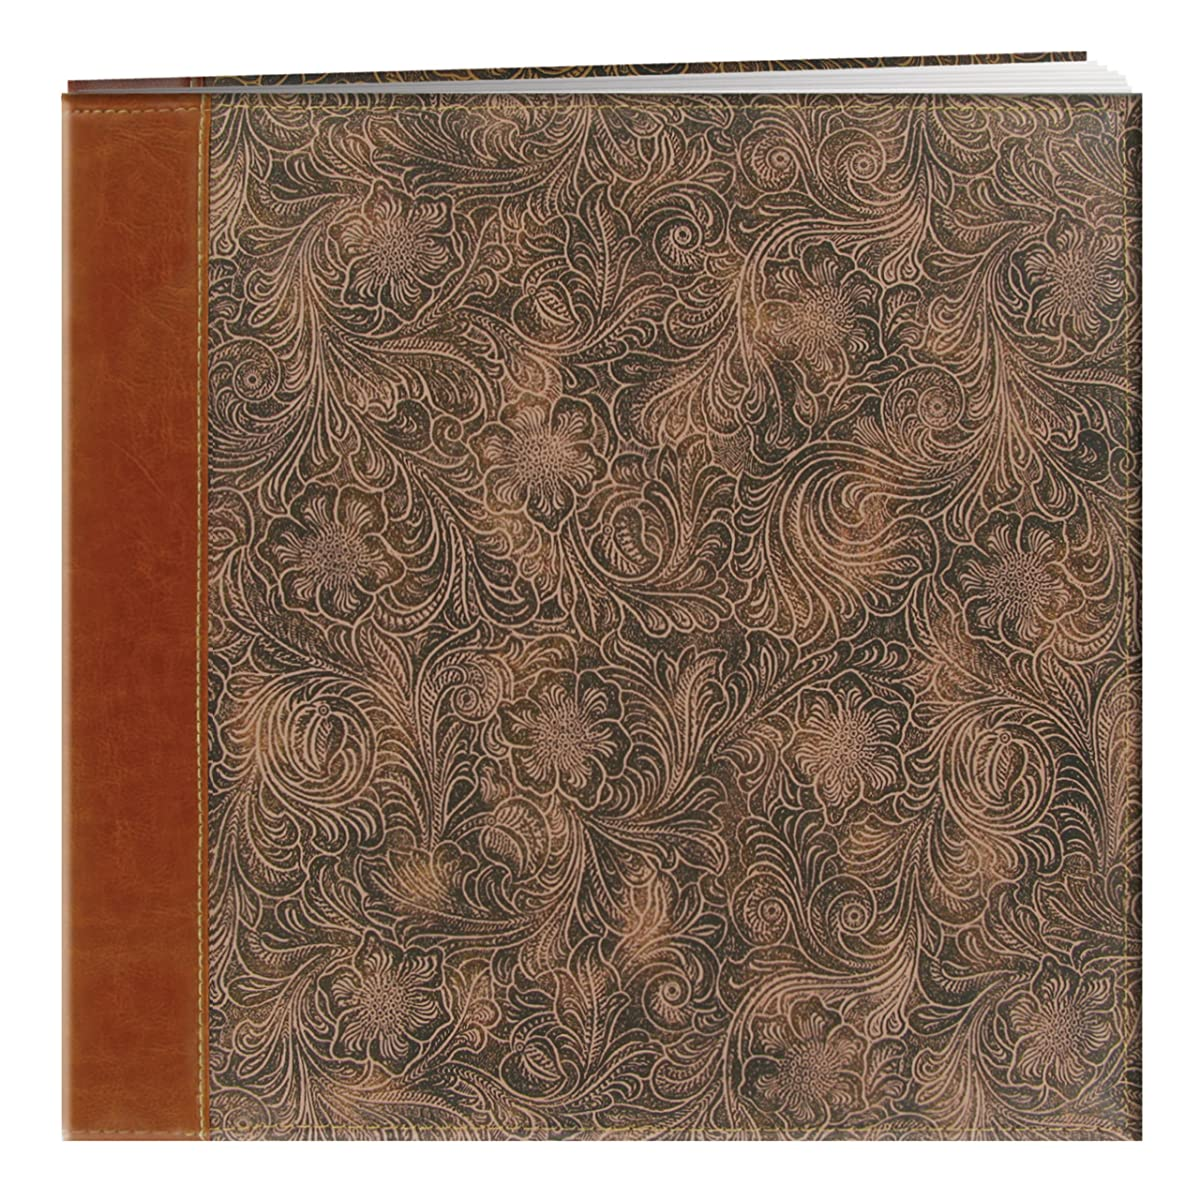 Pioneer 12 Inch by 12 Inch Postbound Embossed Sewn Leatherette Cover Memory Book, Tan